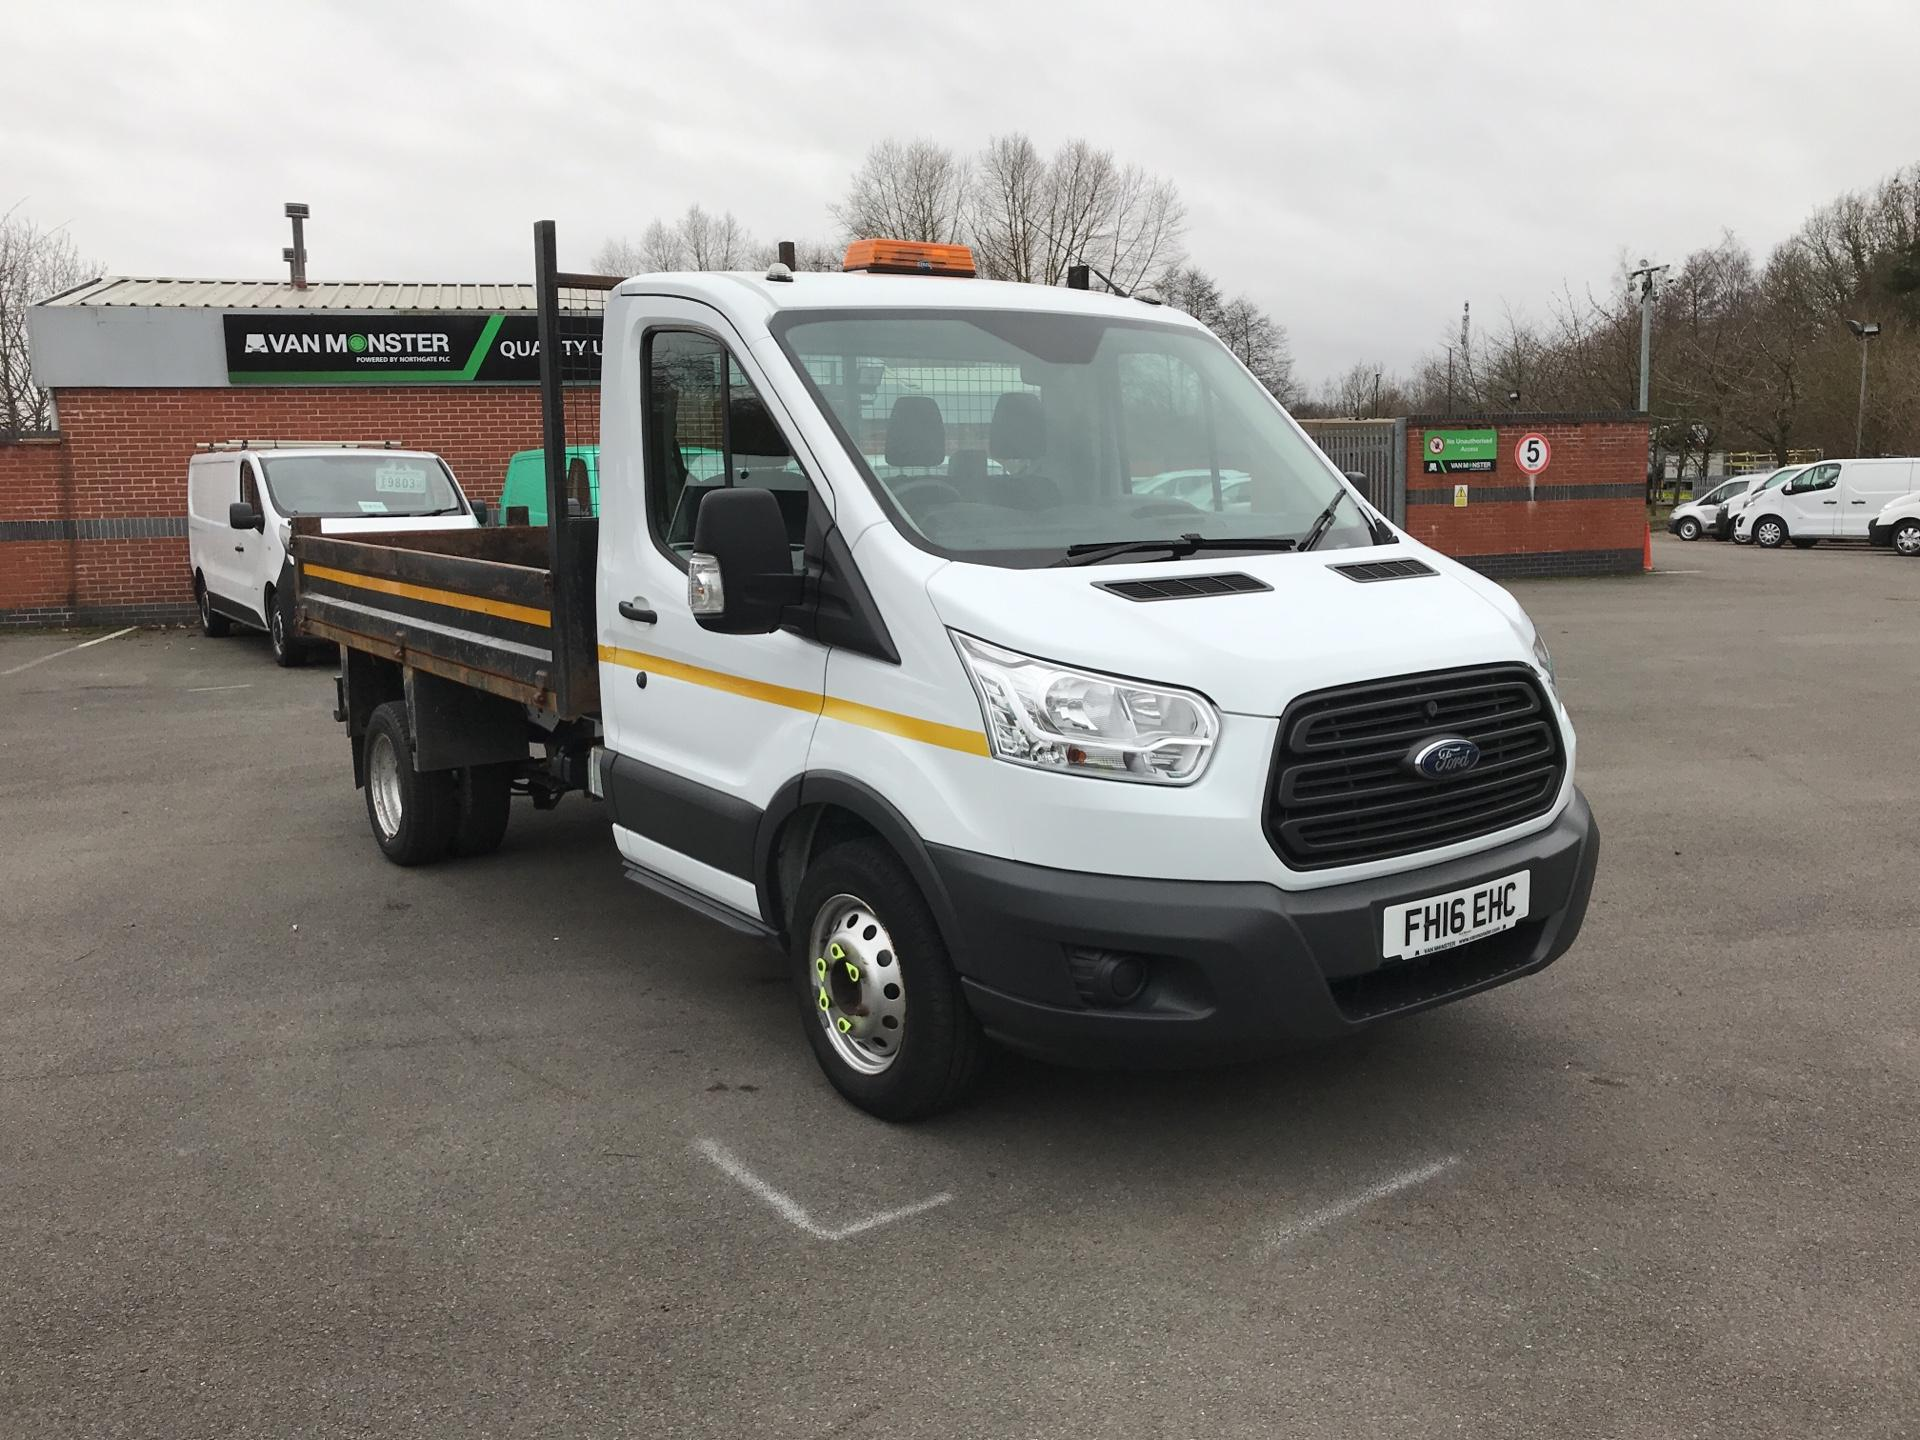 2016 Ford Transit  350 L2 SINGLE CAB TIPPER 100PS EURO 5 *VALUE RANGE VEHICLE - CONDITION REFLECTED IN PRICE* (FH16EHC)